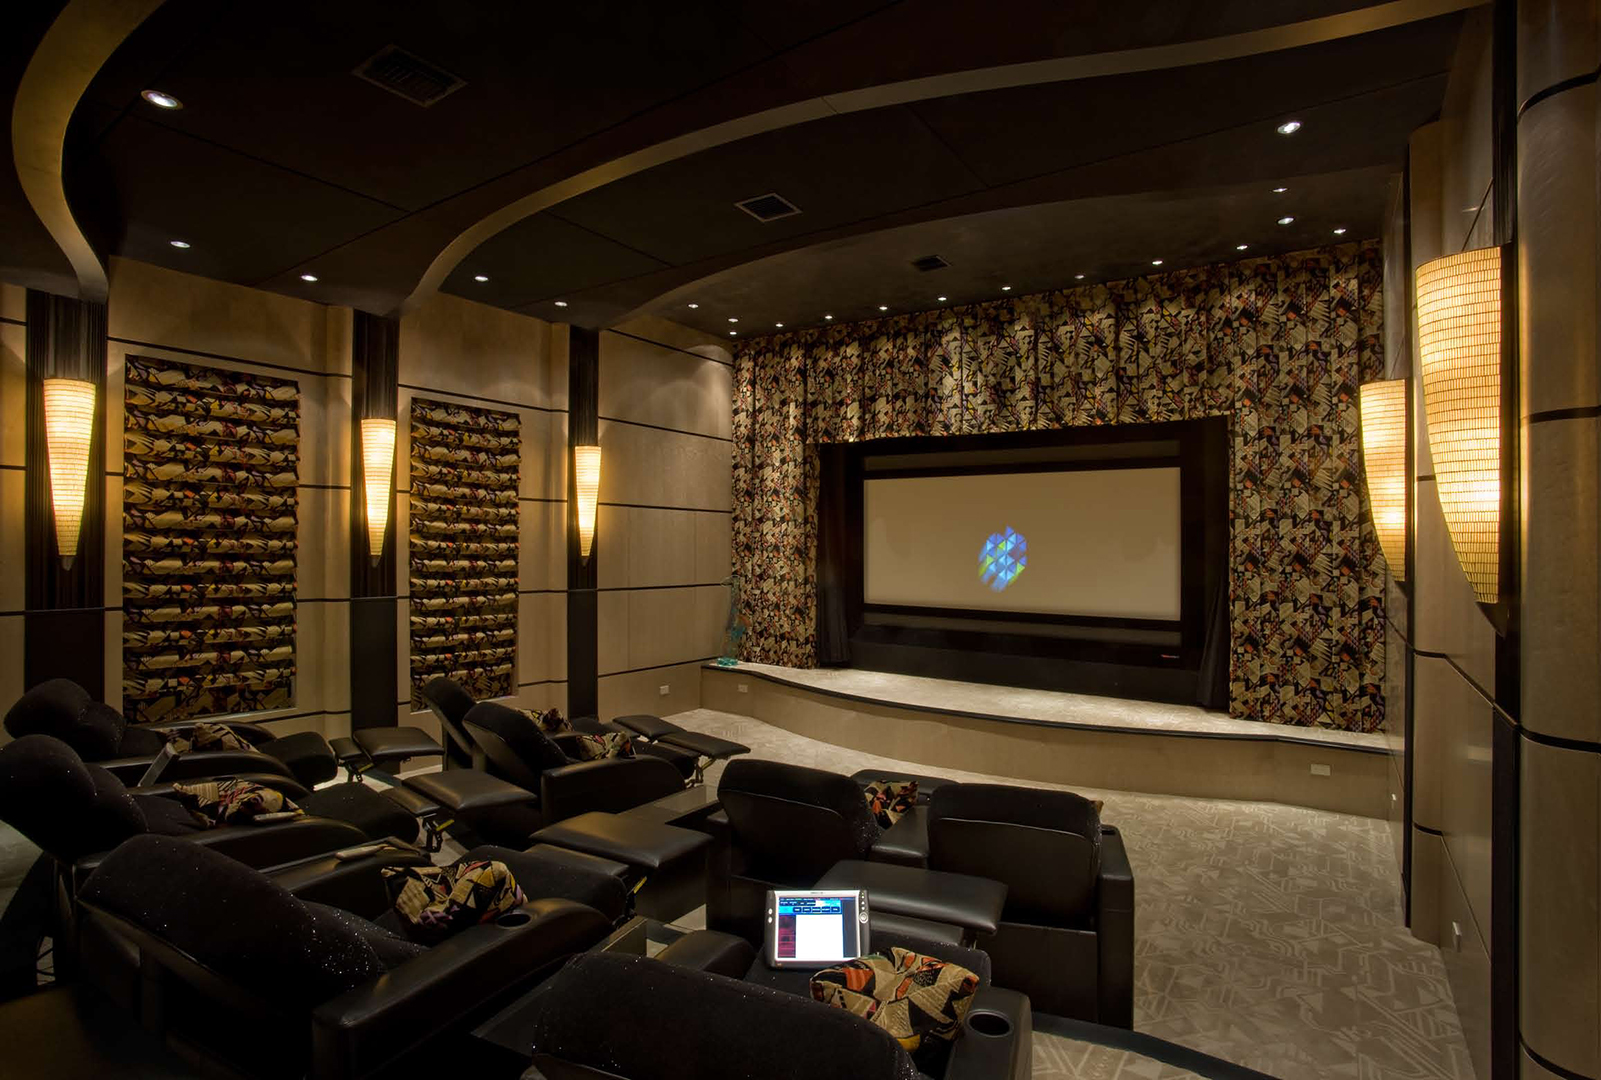 Reclined custom home theater seating